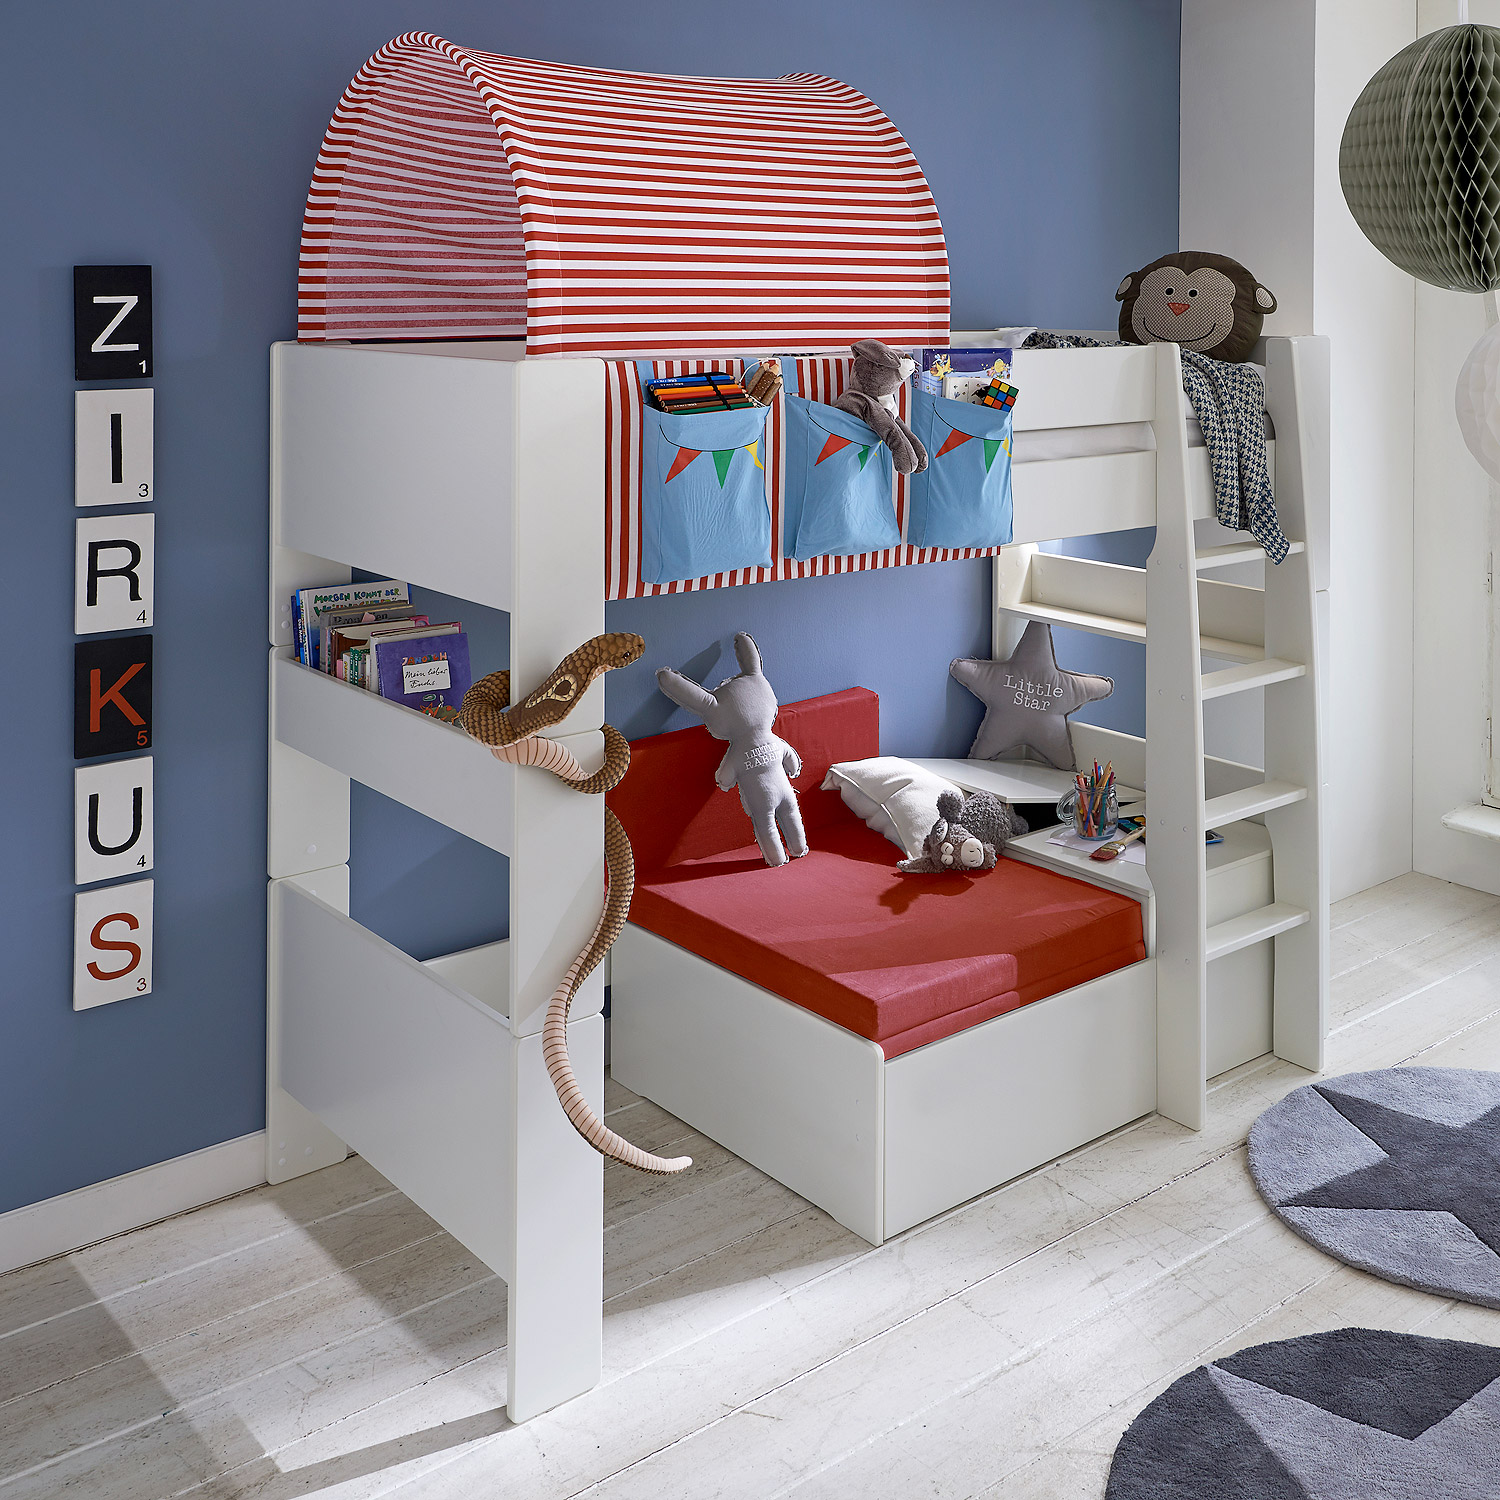 hochbett steens for kids bett wei vorh nge taschen. Black Bedroom Furniture Sets. Home Design Ideas